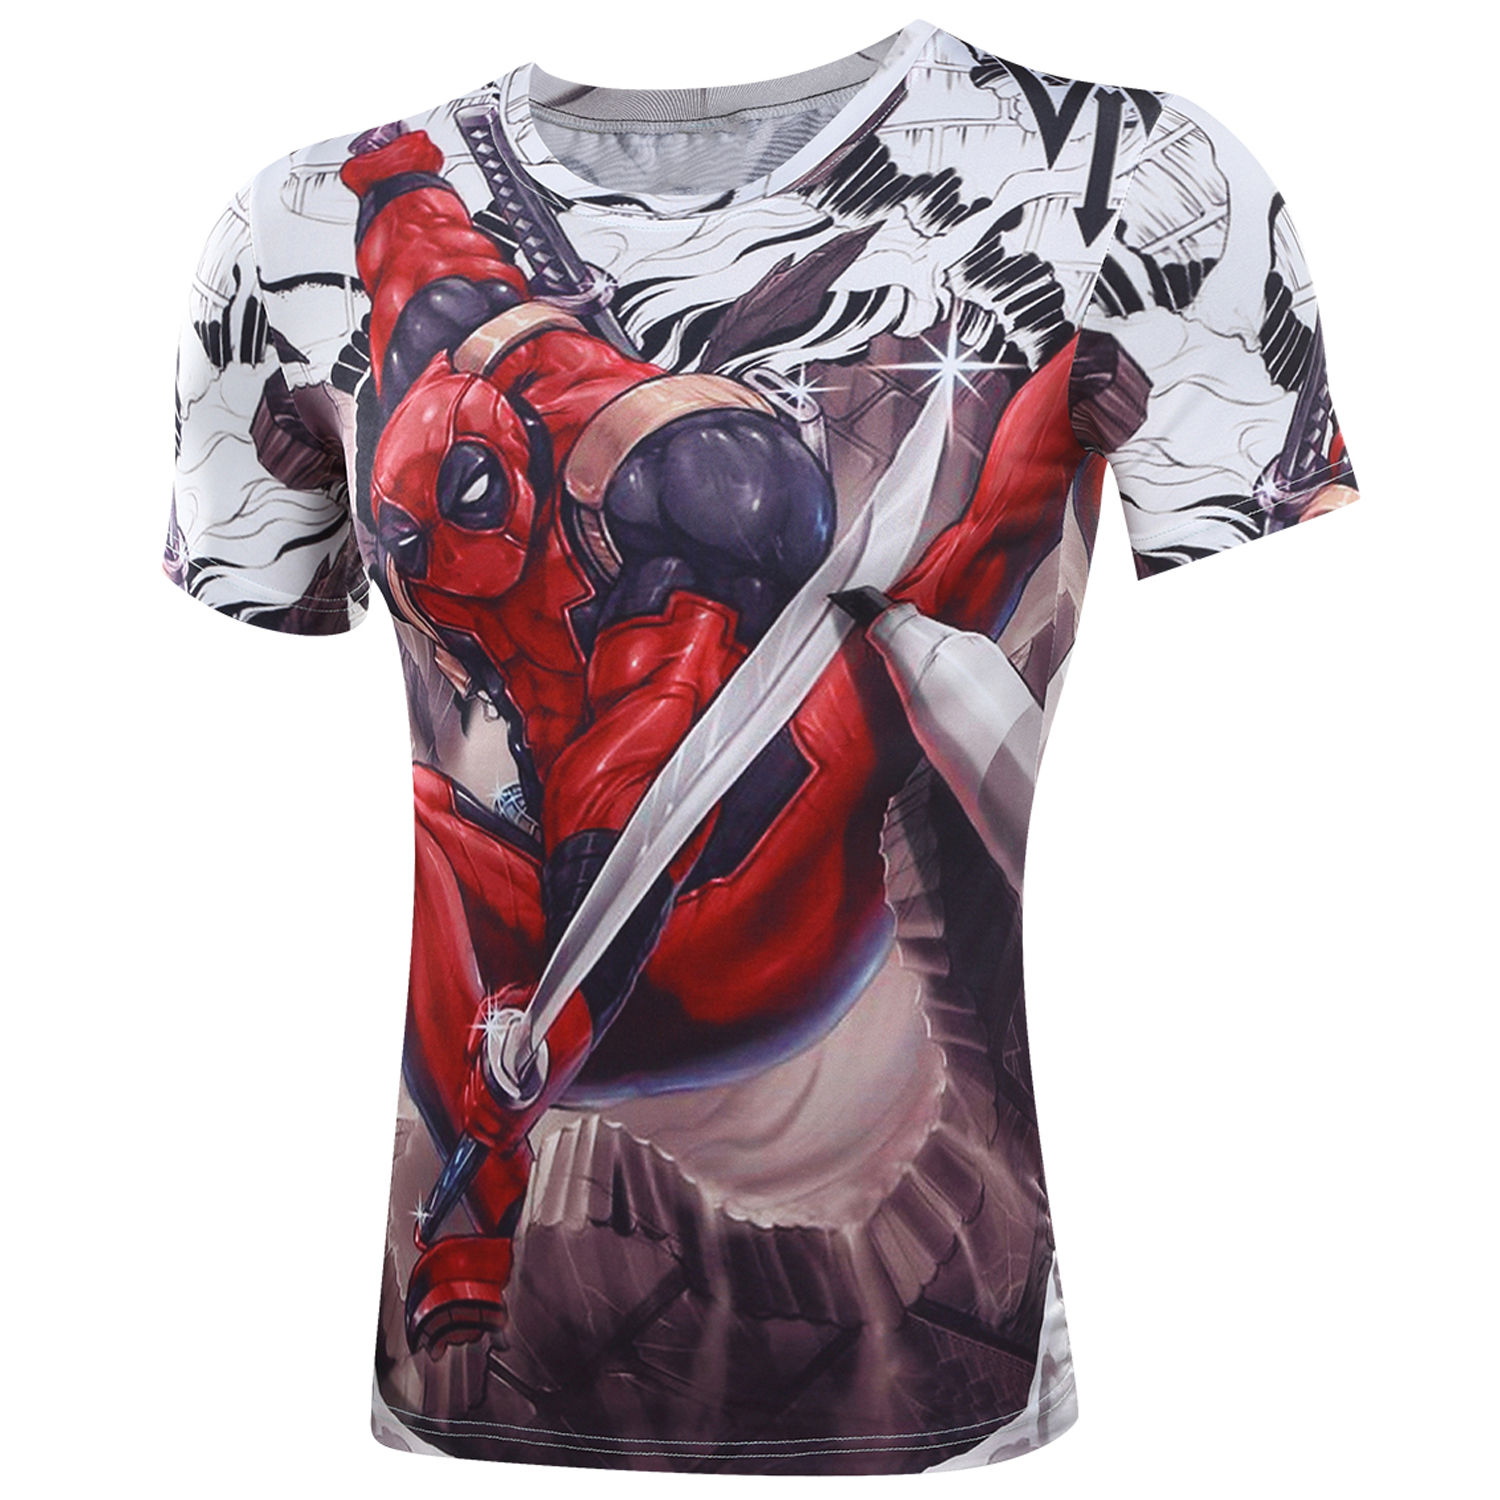 3d t shirt Badass Deadpool T-Shirt Marvel Superhero Superman Captain America Comic Fitness person Fitness Cartoon Characters(China (Mainland))